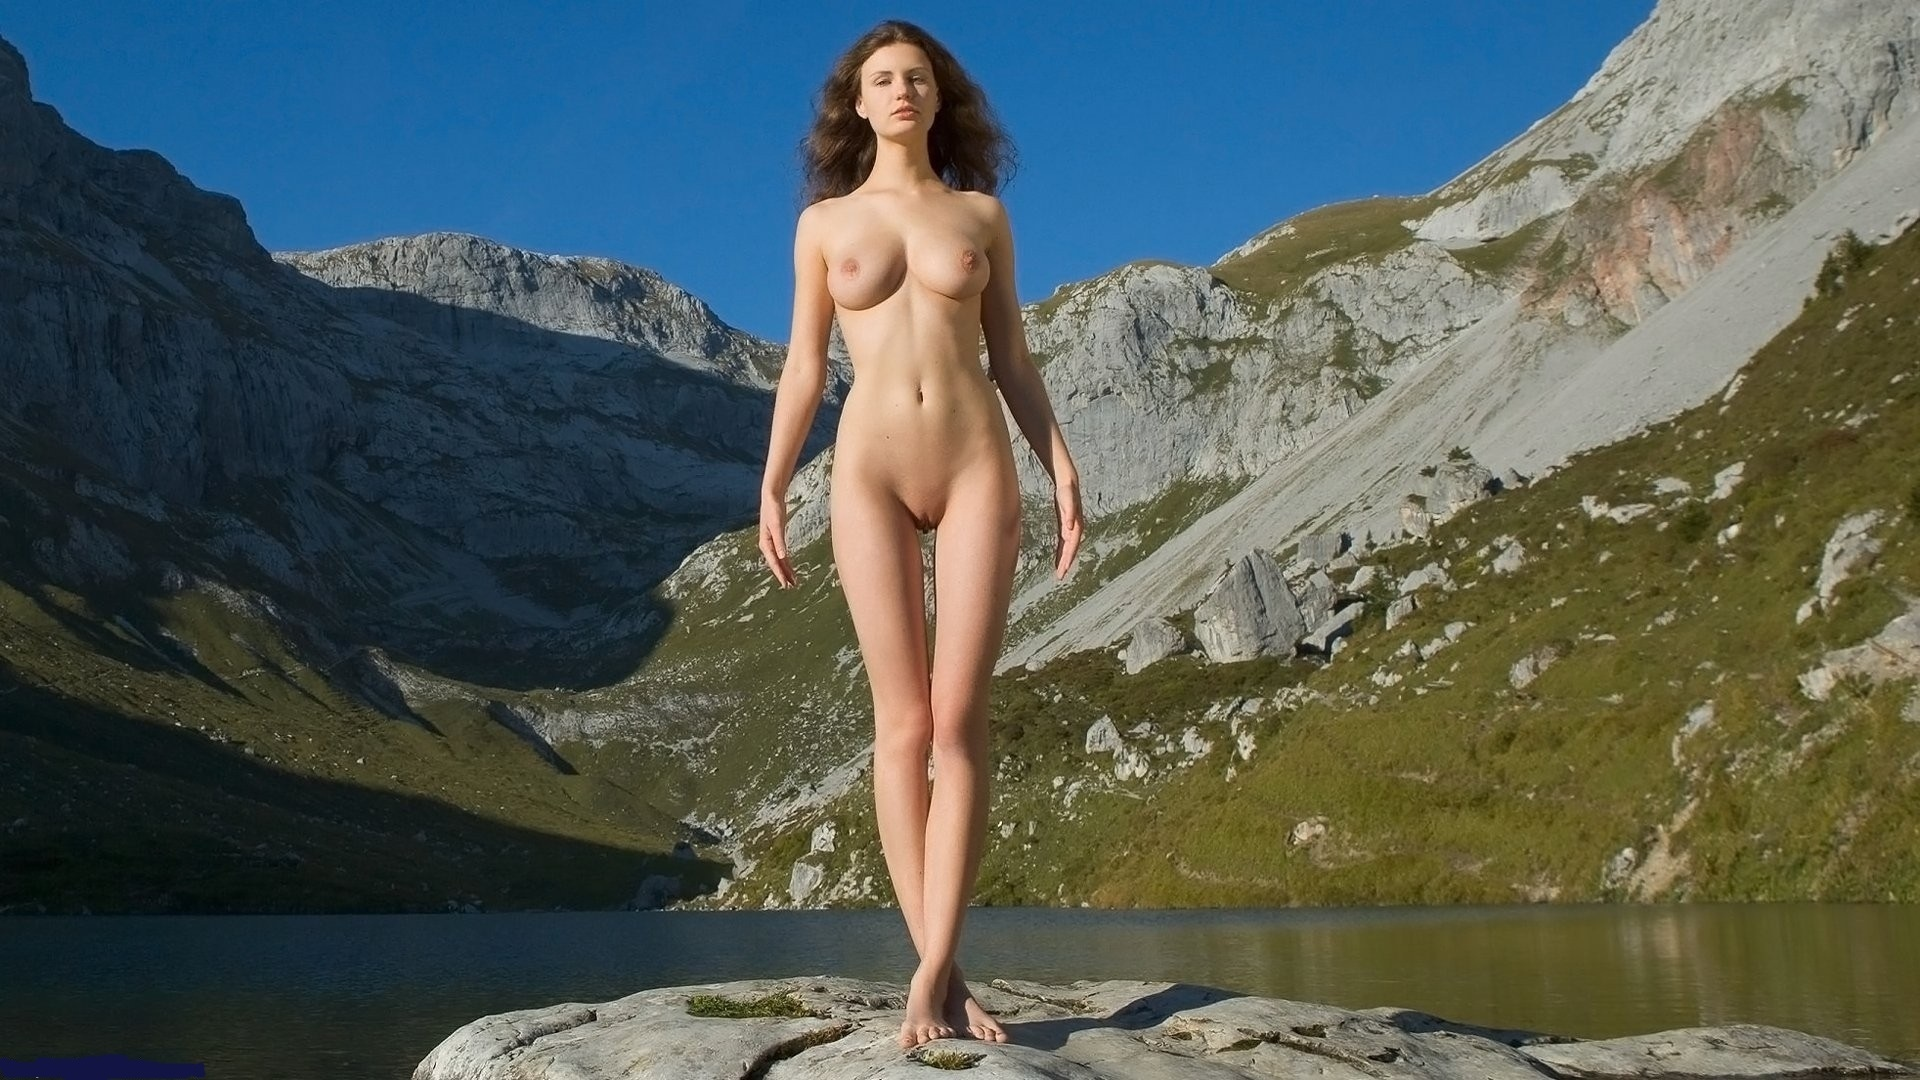 We offer streaming and downloadable bulgerian naked songs hot images